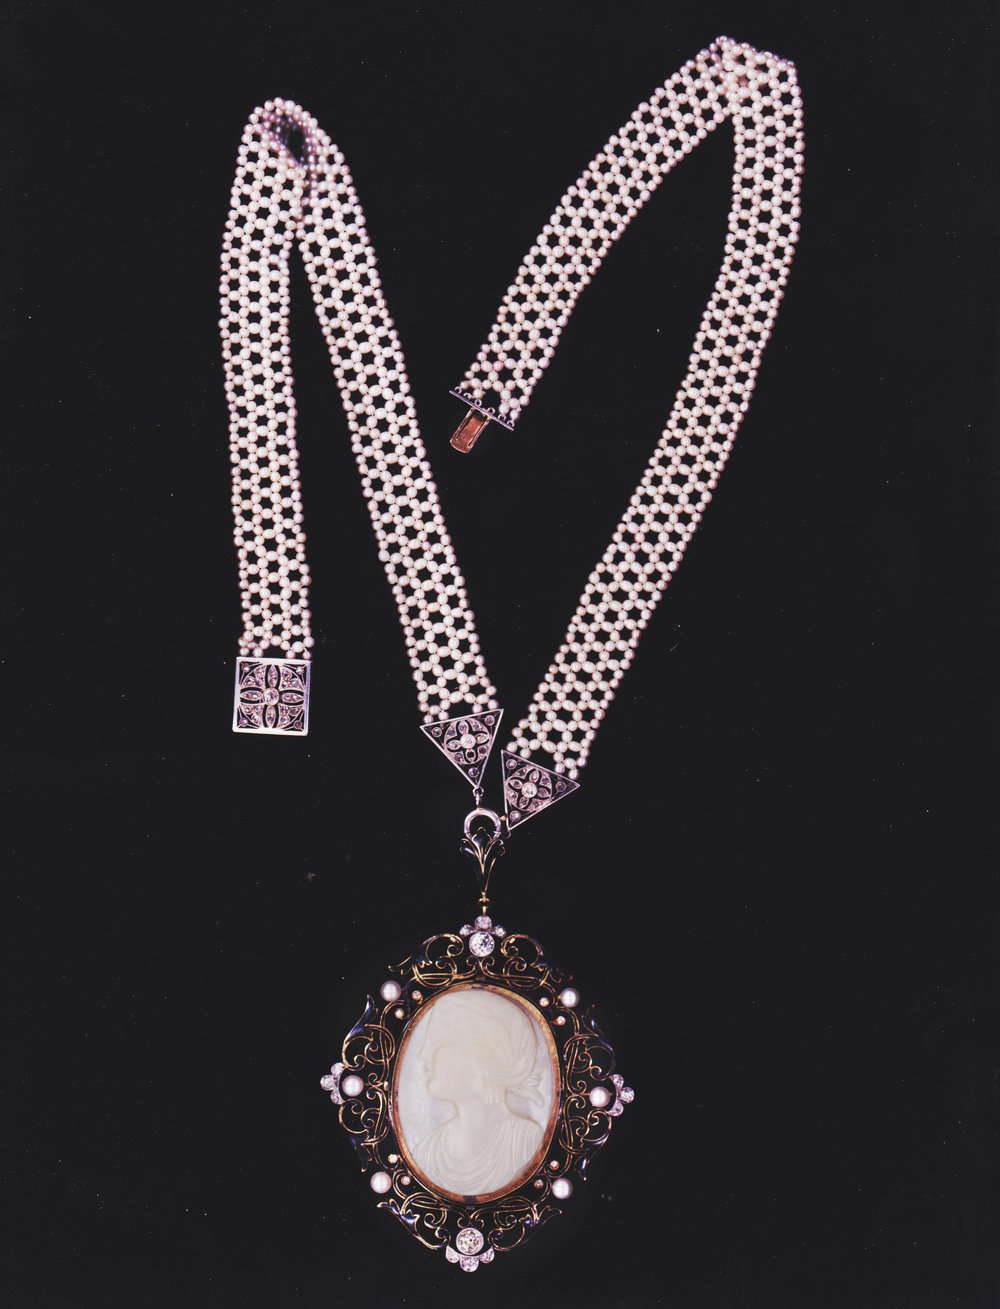 cameo necklace 2 001.jpg